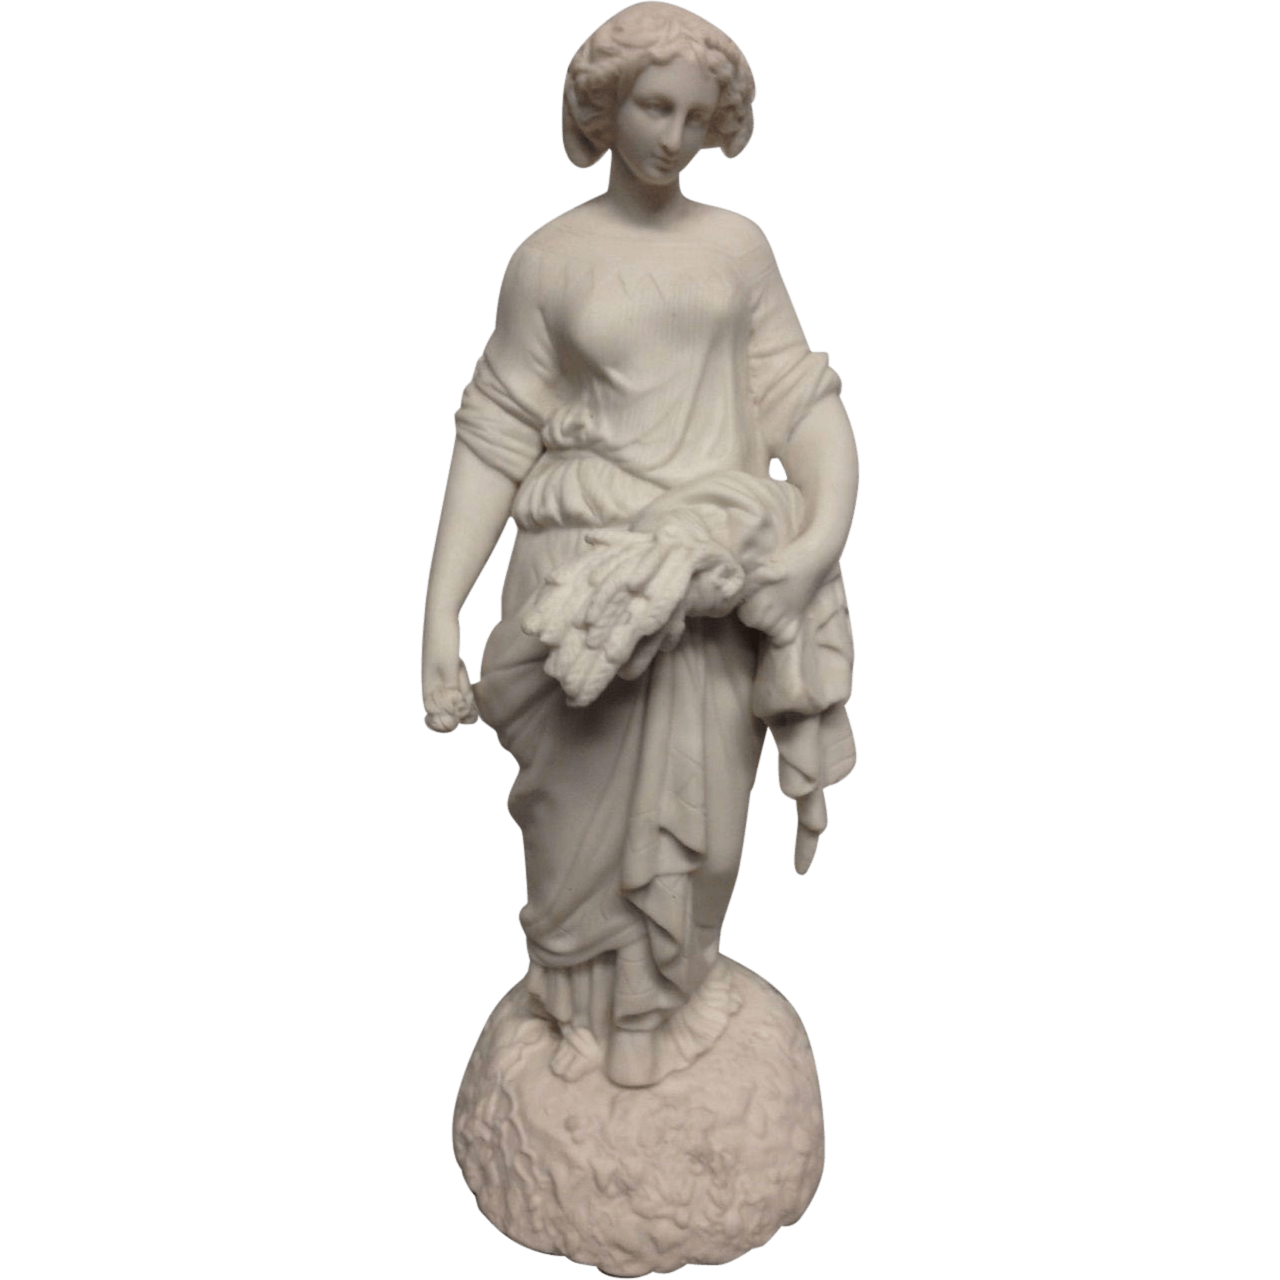 png free library Greek maiden sculpture png. Statue transparent